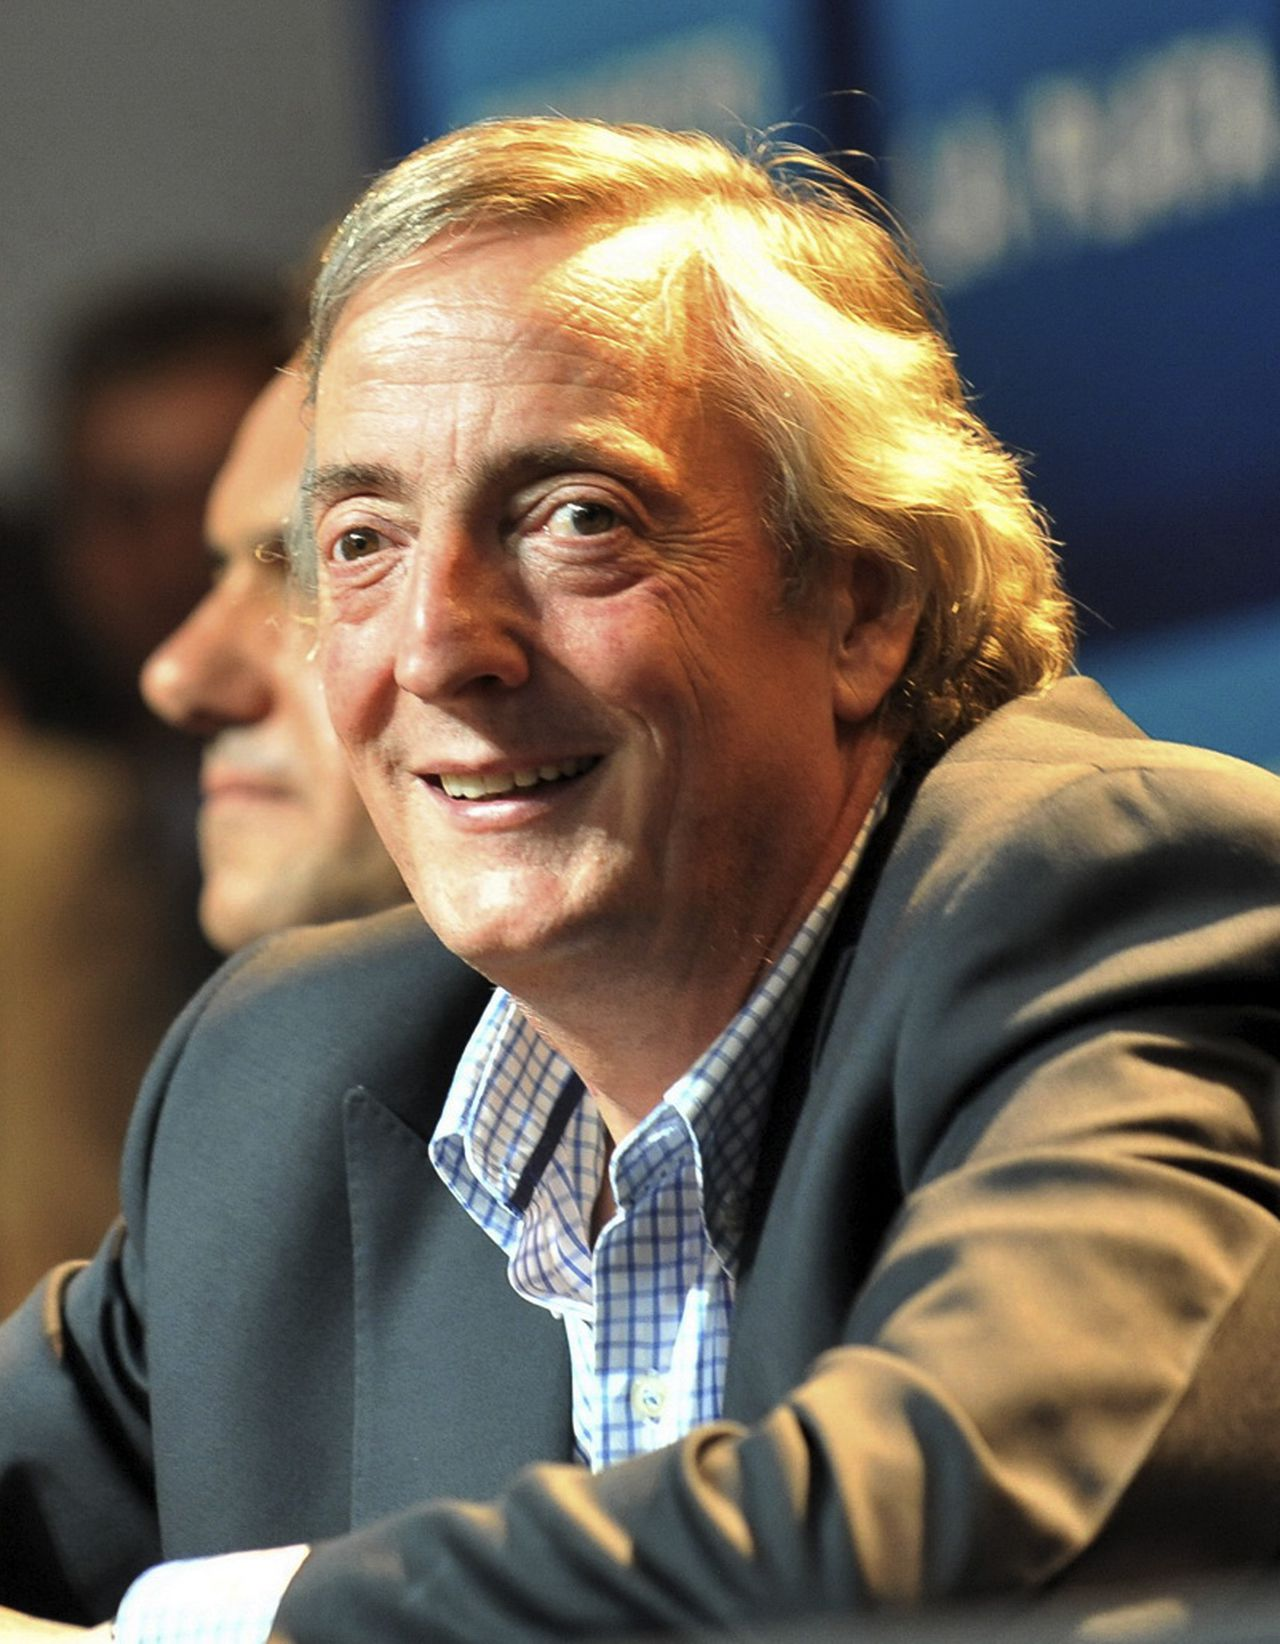 Congressman Nestor Kirchner, former Argentine president and husband of Argentine President Cristina Fernandez, attends a rally to mark his first public appearance, since undergoing carotid artery surgery, in La Plata, in this February 24, 2010 file photo. Kirchner, one of the country's most powerful politicians, died October 27, 2010, his doctor said. Kirchner, considered President Cristina Fernandez's closest advisor and a major power broker in her government, had been expected to run again for president in next year's election. REUTERS/Imagen 233/Handout/Files (ARGENTINA - Tags: POLITICS OBITUARY) FOR EDITORIAL USE ONLY. NOT FOR SALE FOR MARKETING OR ADVERTISING CAMPAIGNS